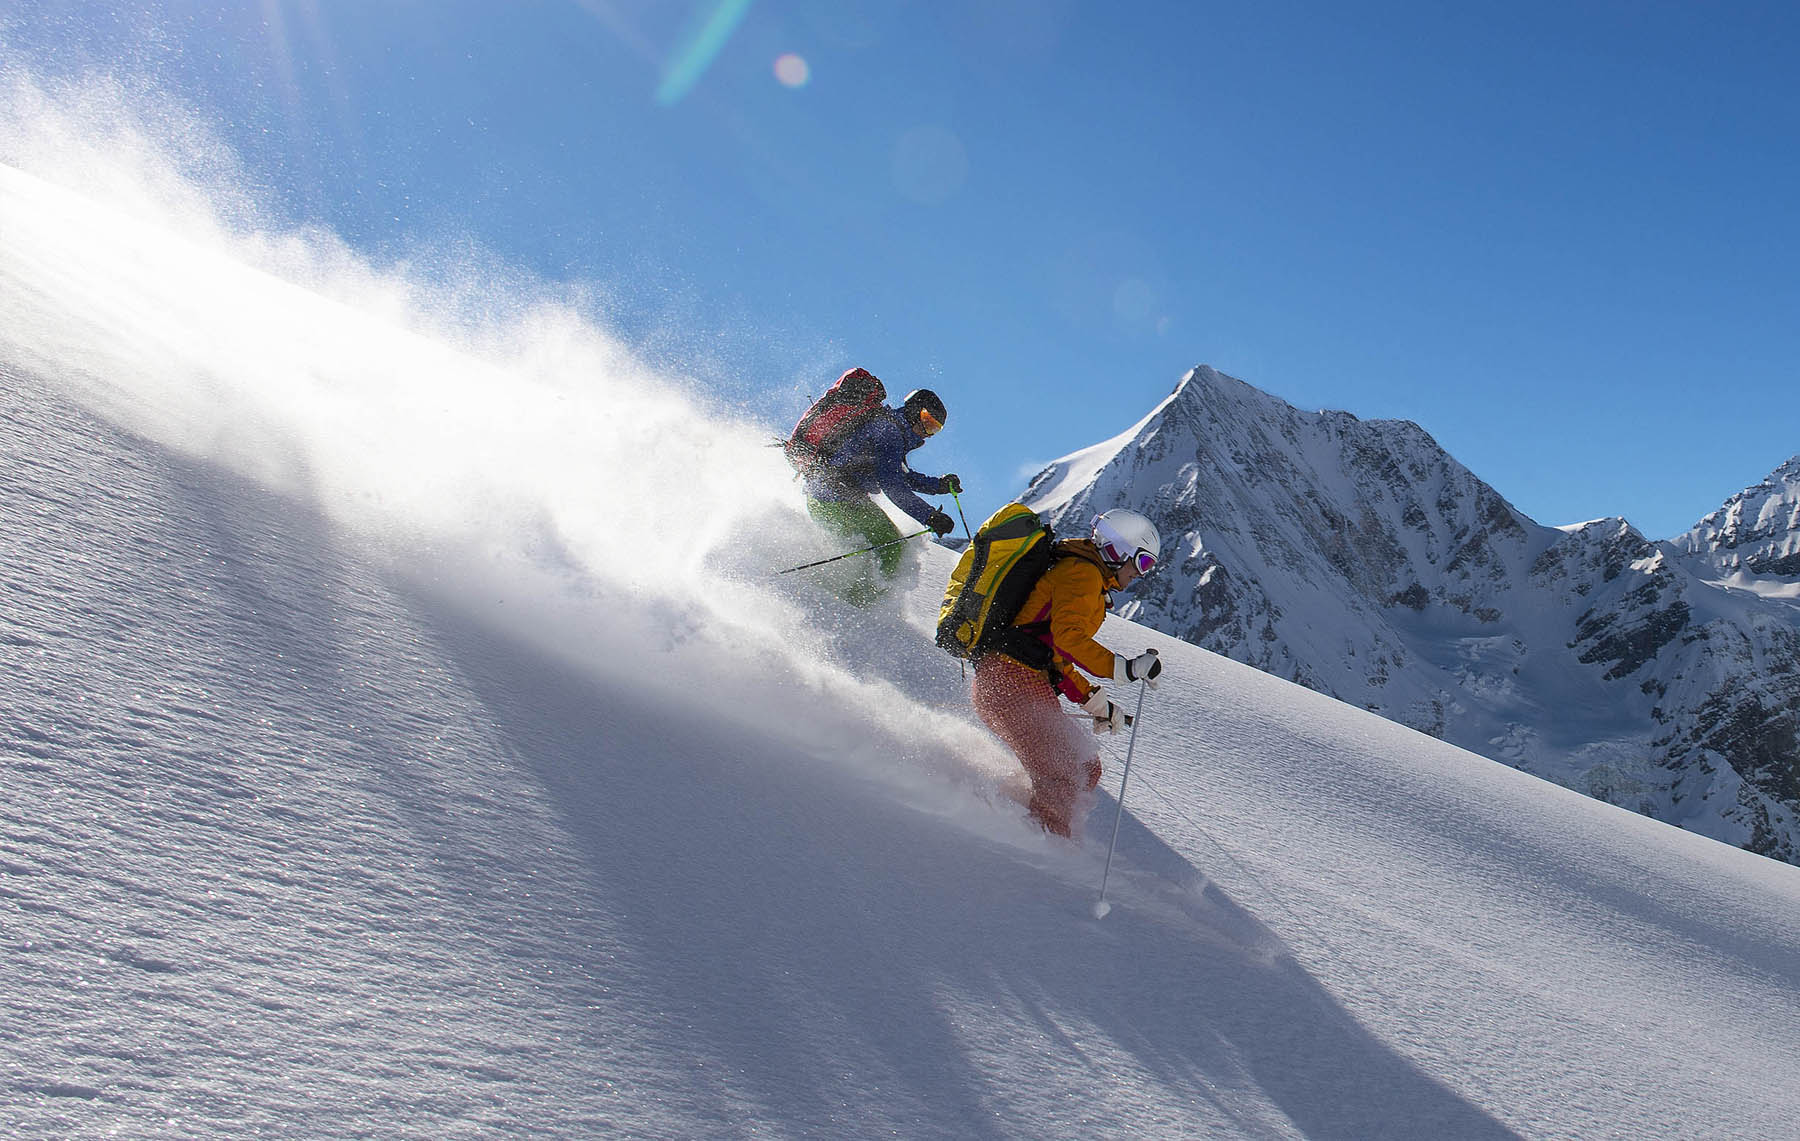 Image newsfeed Skiing in France, Switzerland and Italy